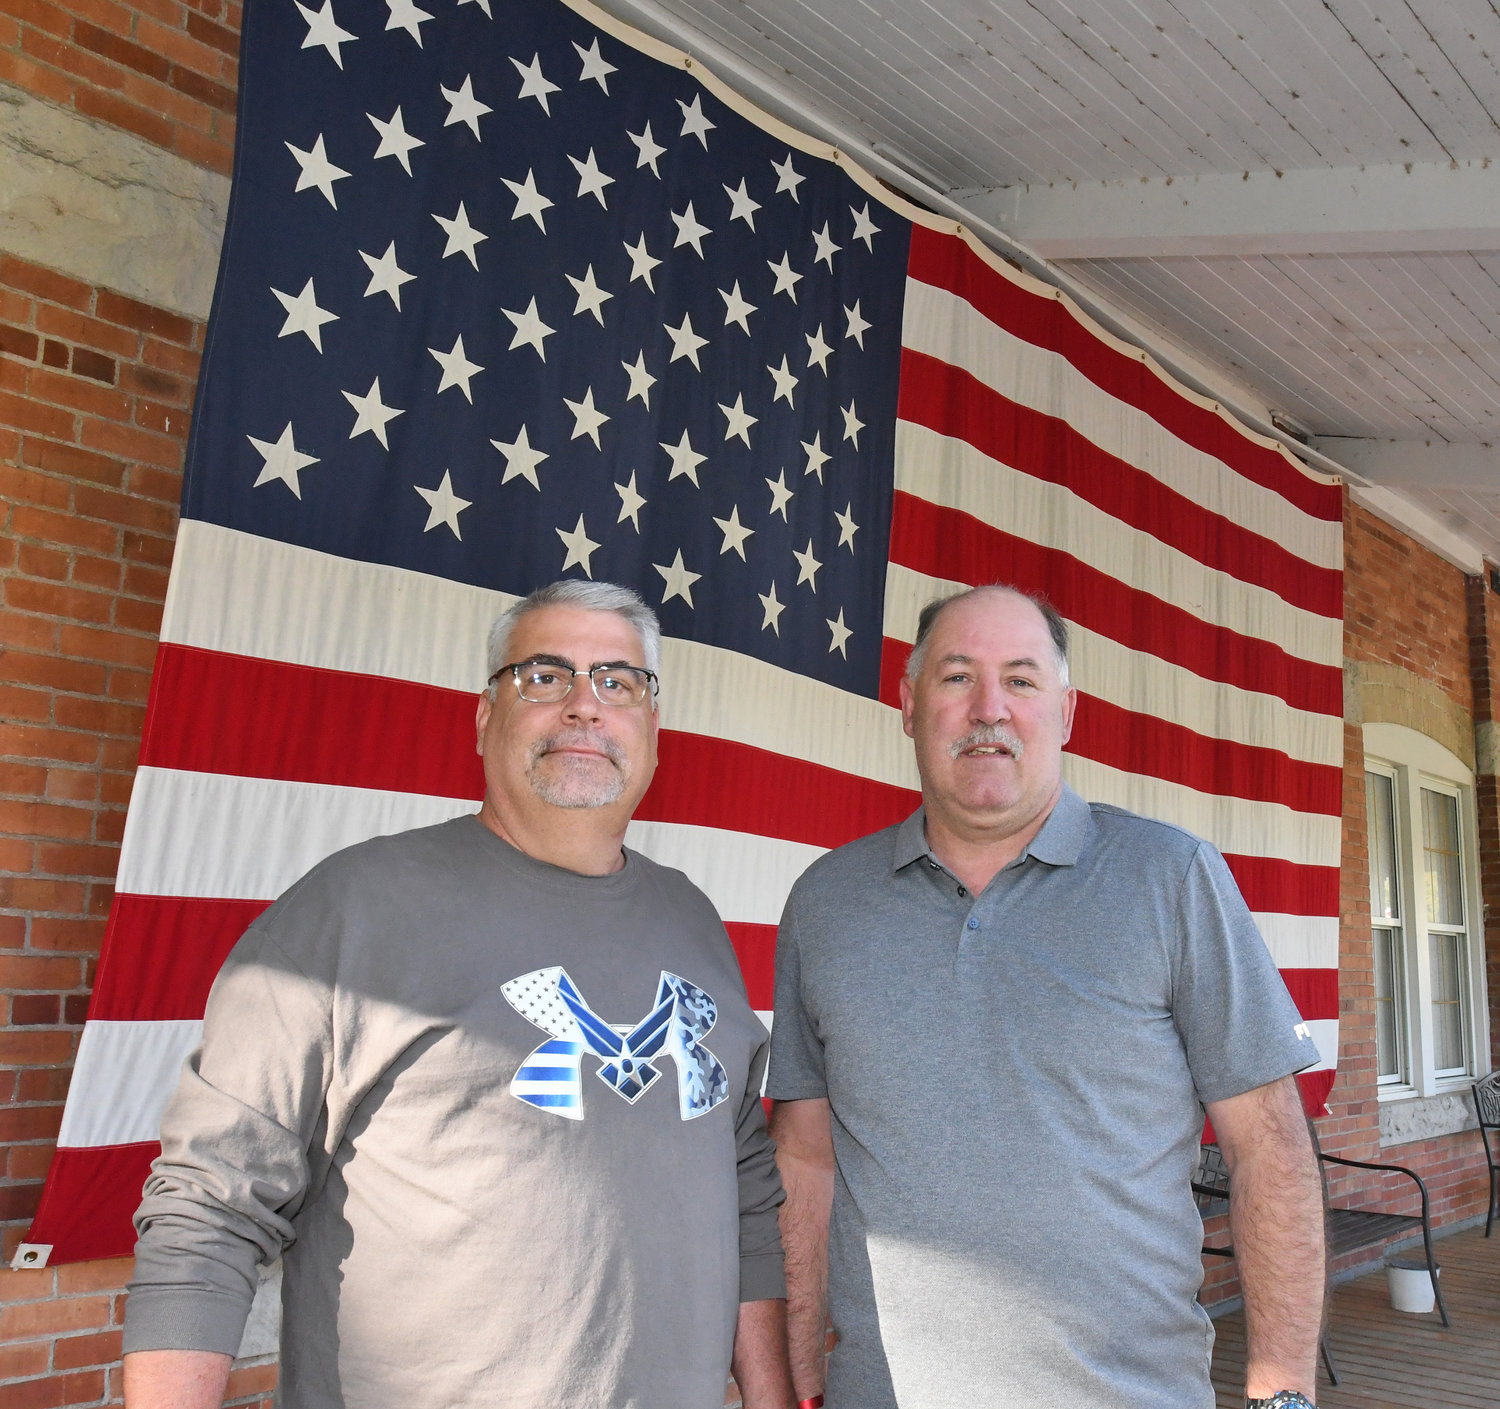 PARTY ON THE PORCH — Clark Mills American Legion Post 26 Commander Jim Nolan, left, and Past Commander Butch Bellows, stand in front of Old Glory on the front porch of Post 26 during the chapter's Party on the Porch event on June 14.